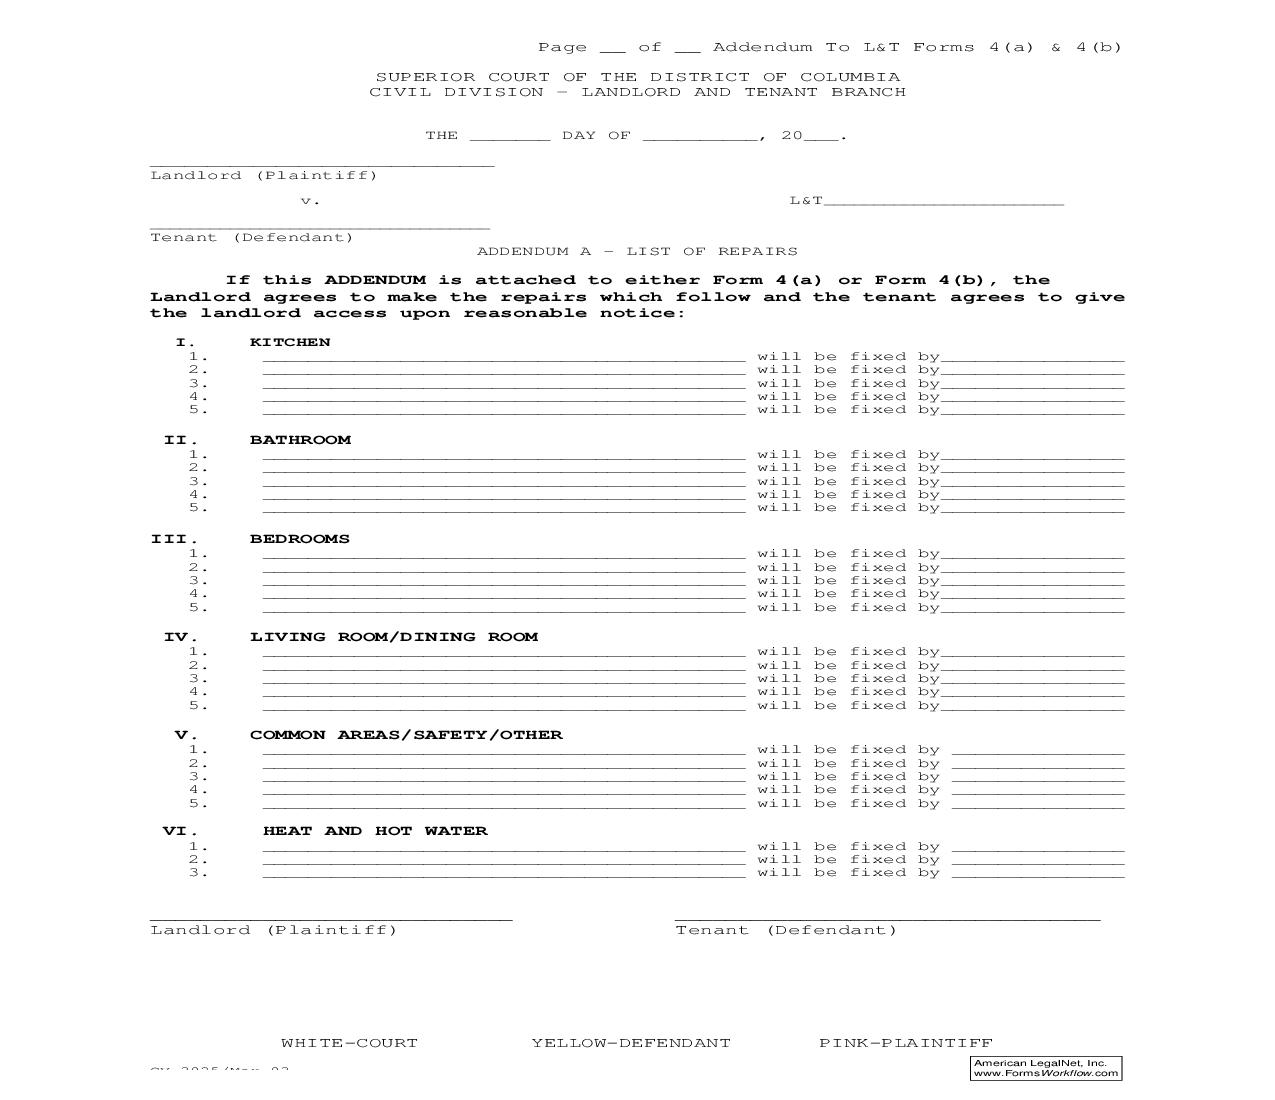 Addendum A List Of Repairs (Addendum To Forms 4(a) And 4(b)) | Pdf Fpdf Doc Docx | District Of Columbia